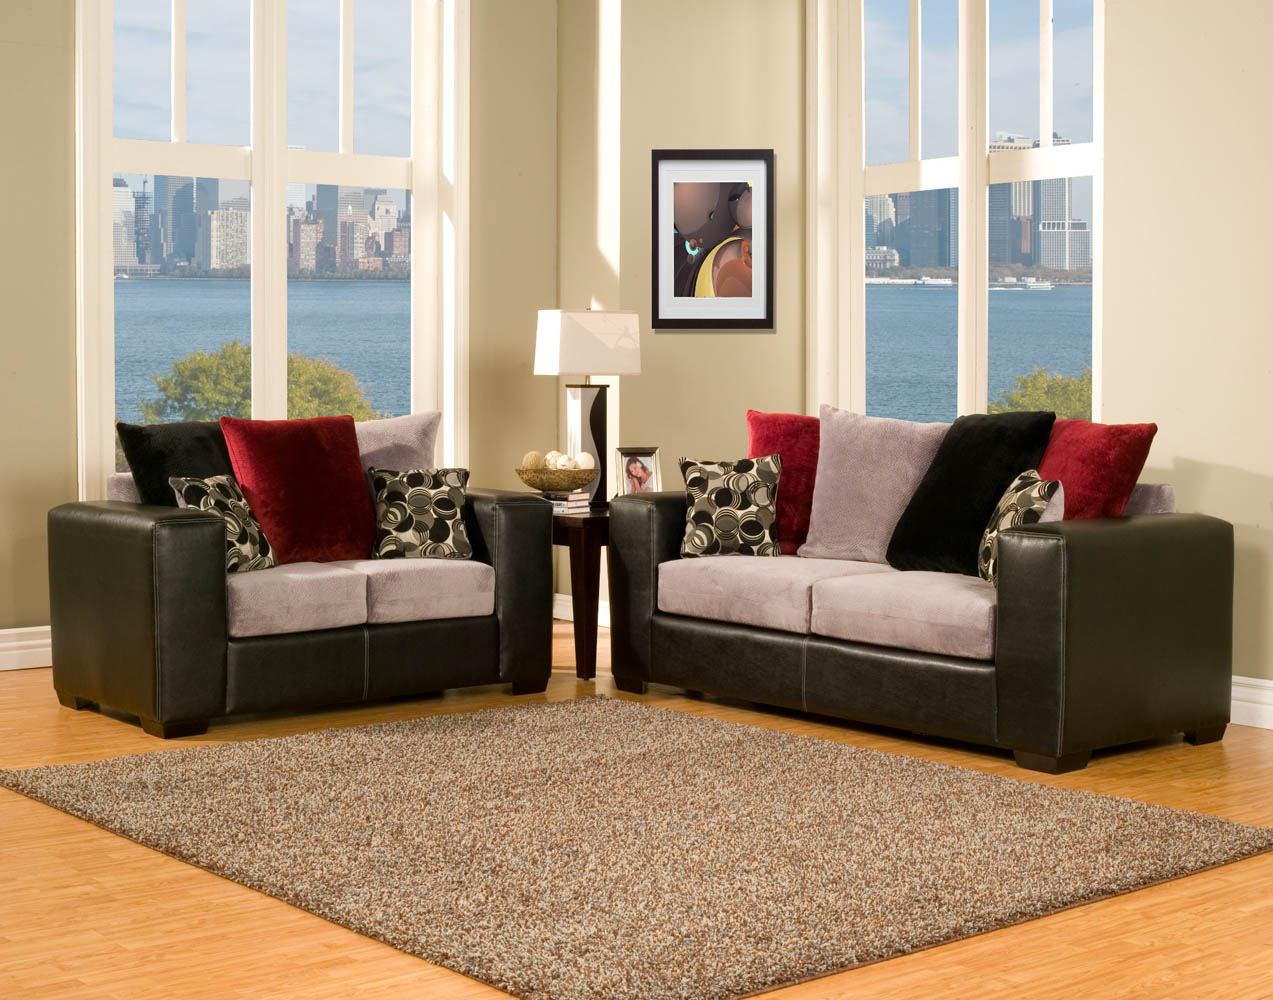 Fantastic 2 Piece Black Grey And Red Modern Sofa Set Uwap Interior Chair Design Uwaporg